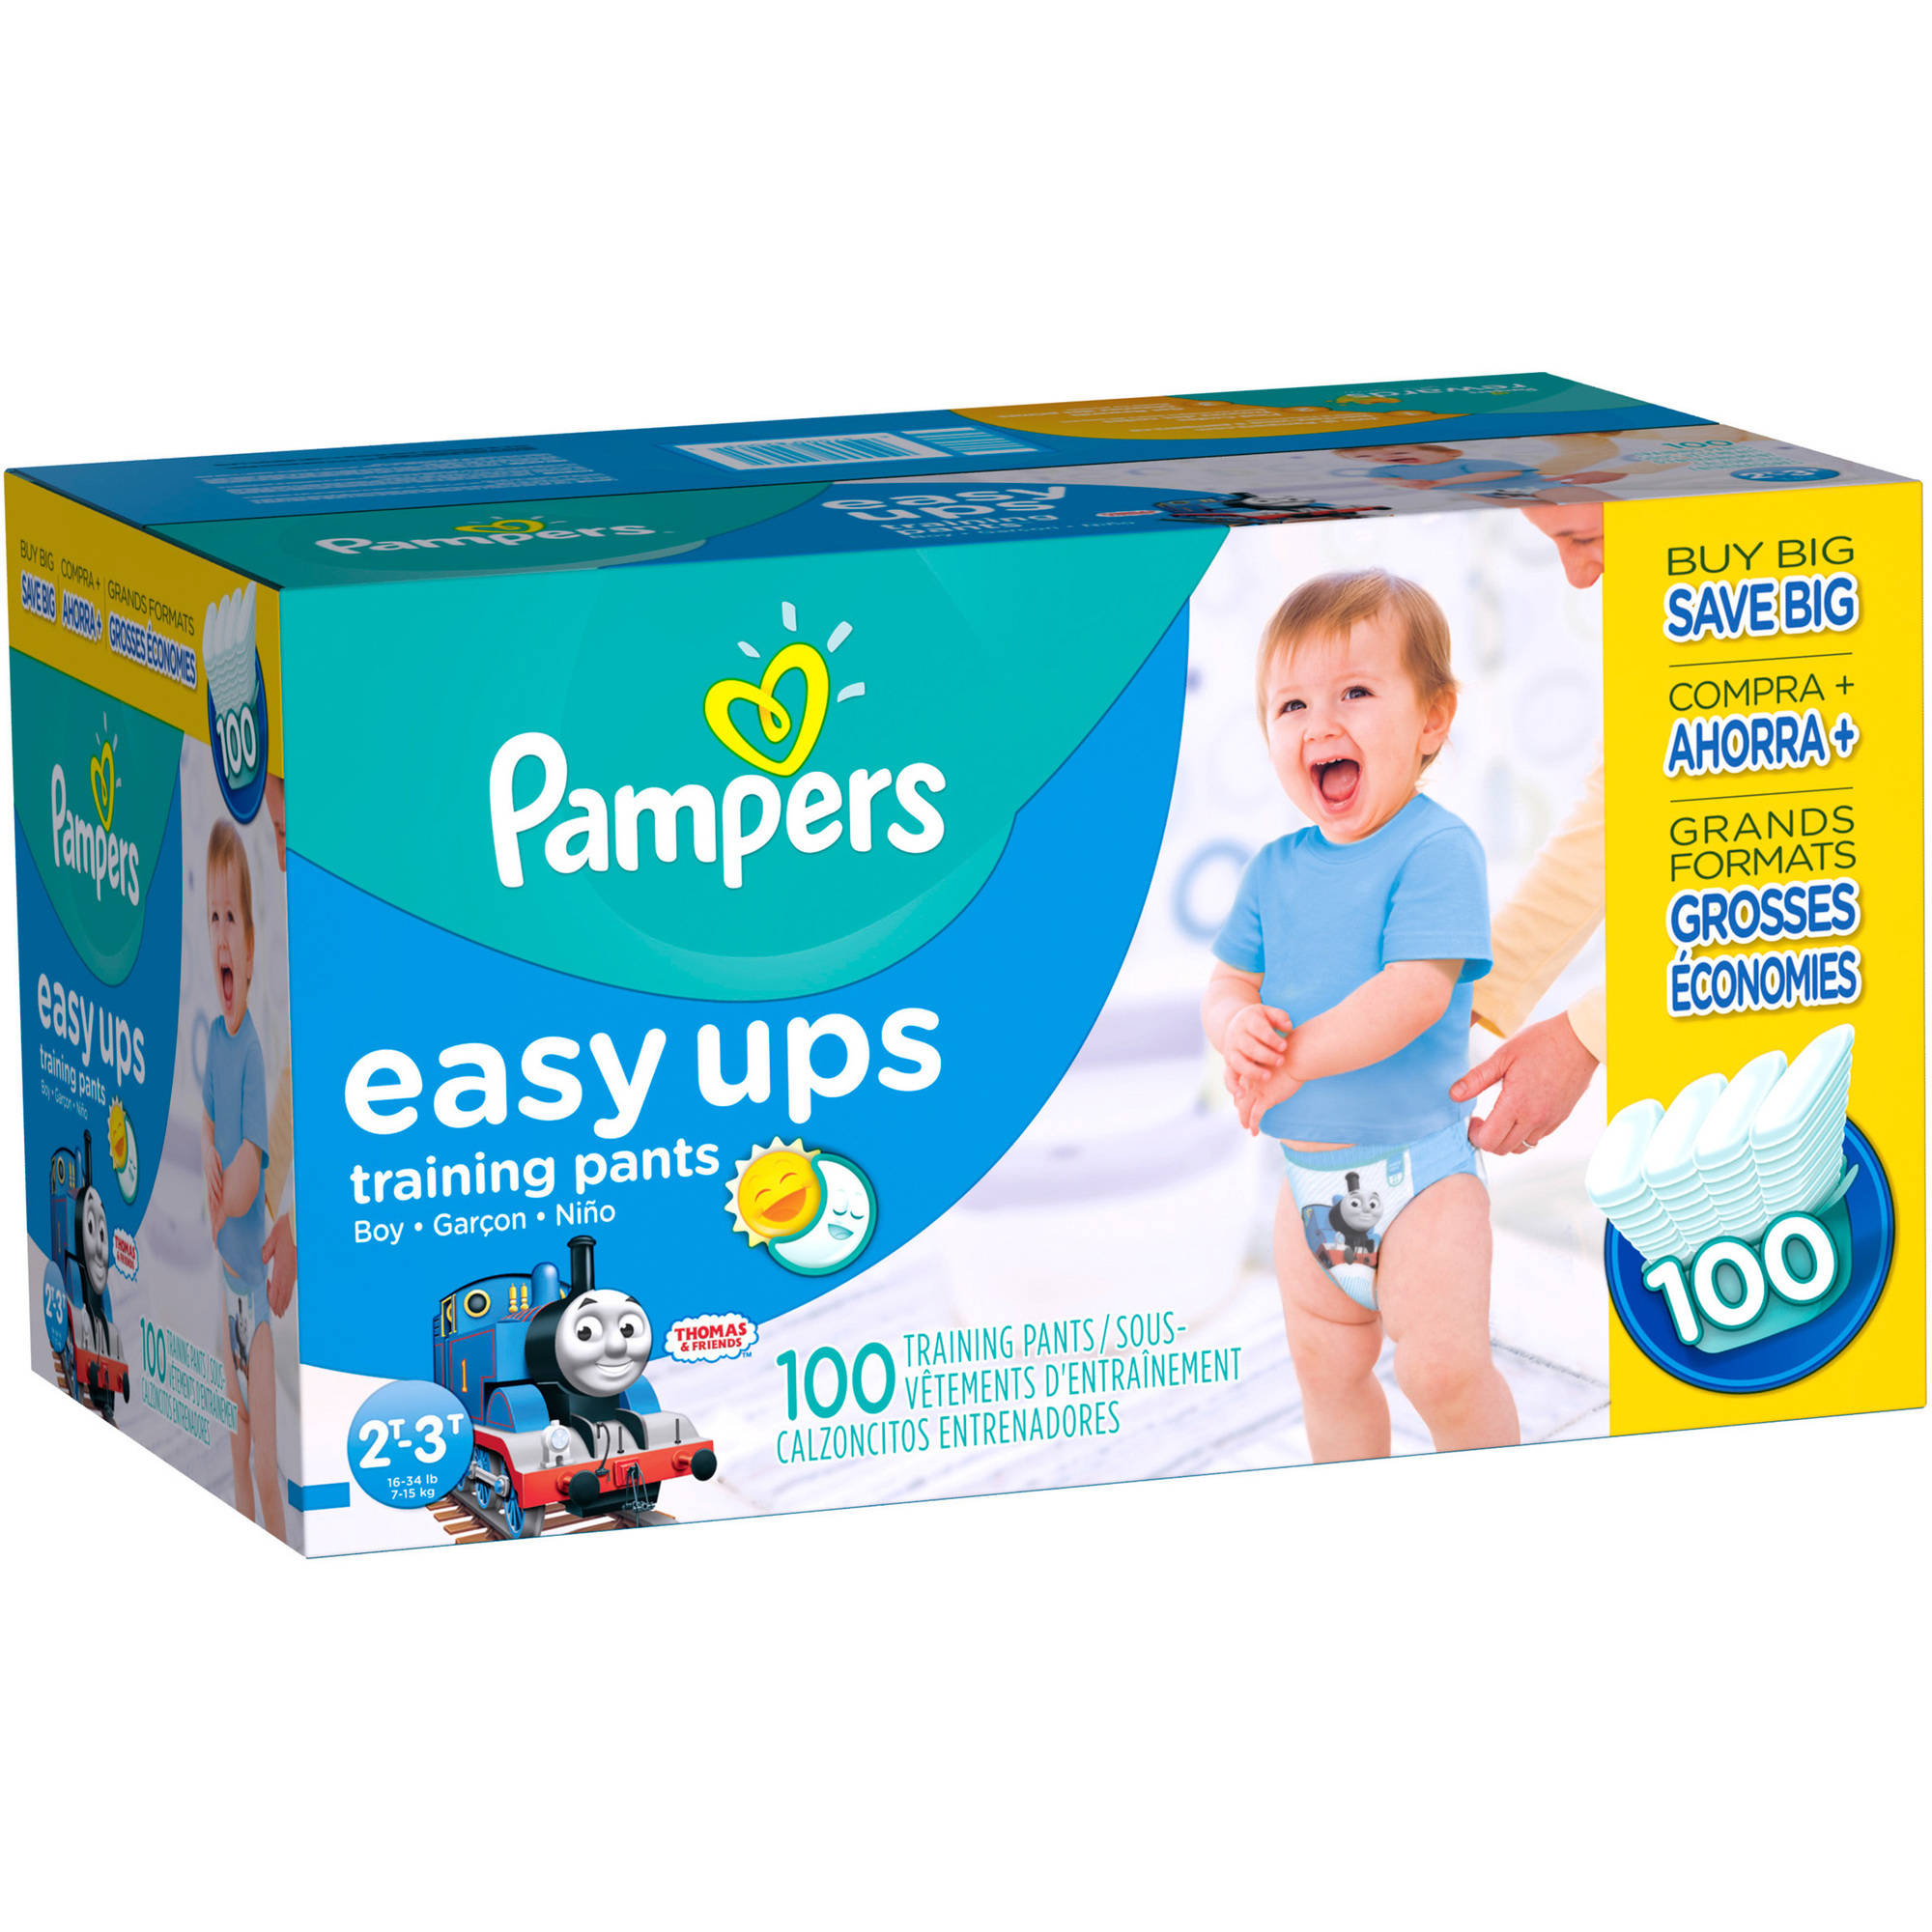 Pampers Easy Ups Boys Training Pants, Size 2T-3T, 164 Pants